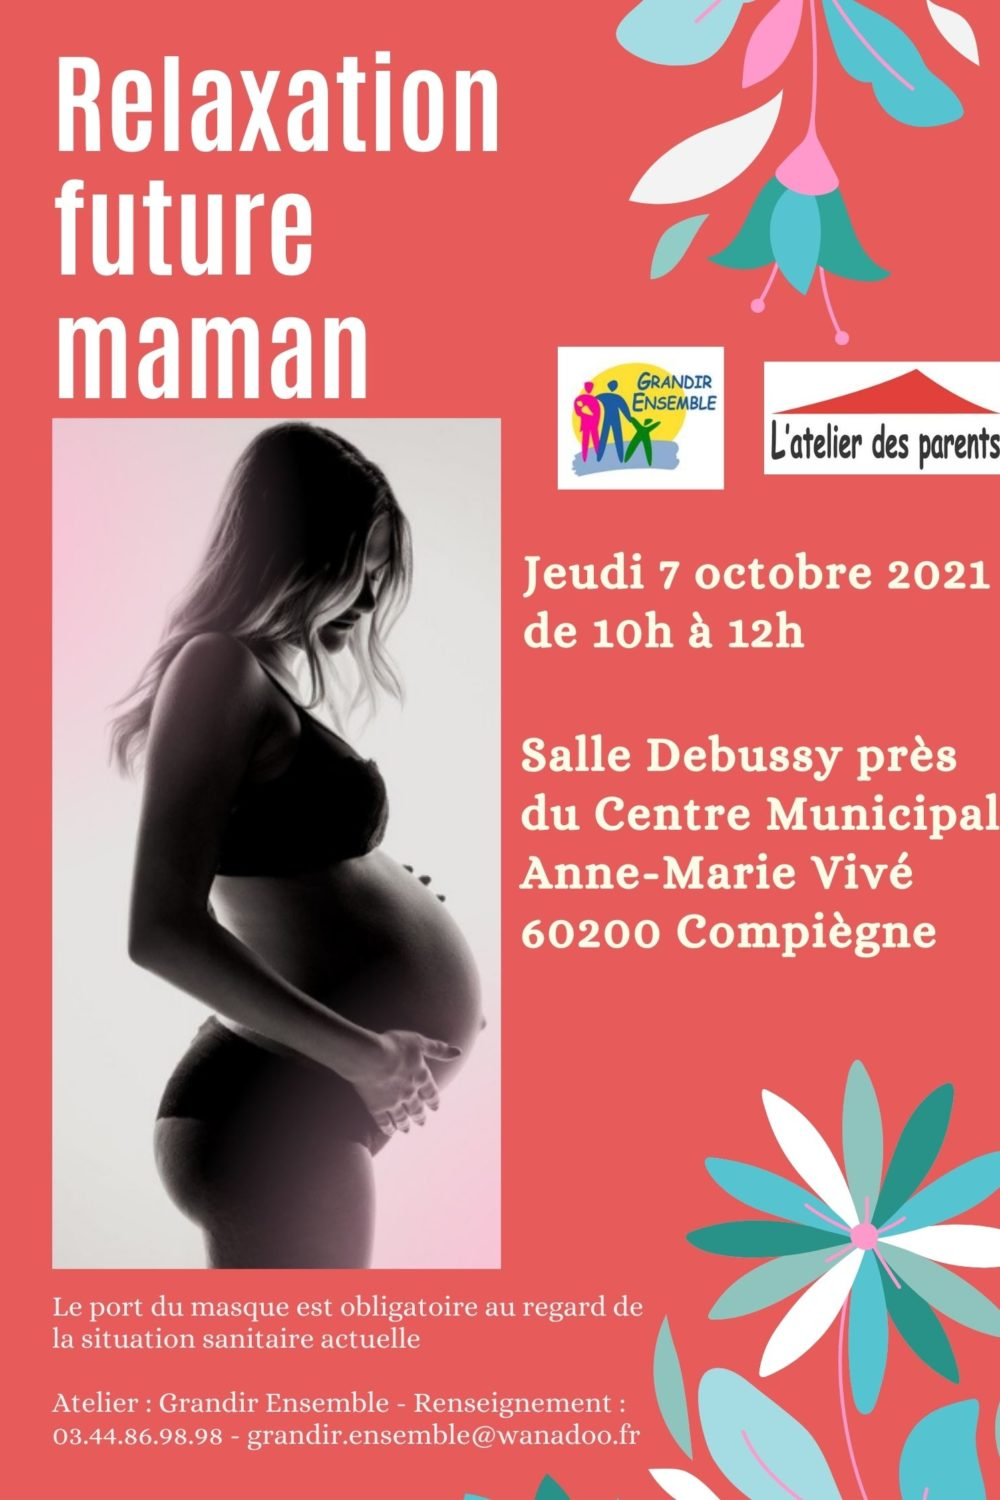 Relaxation future maman du 7 octobre 2021 S. Debussy